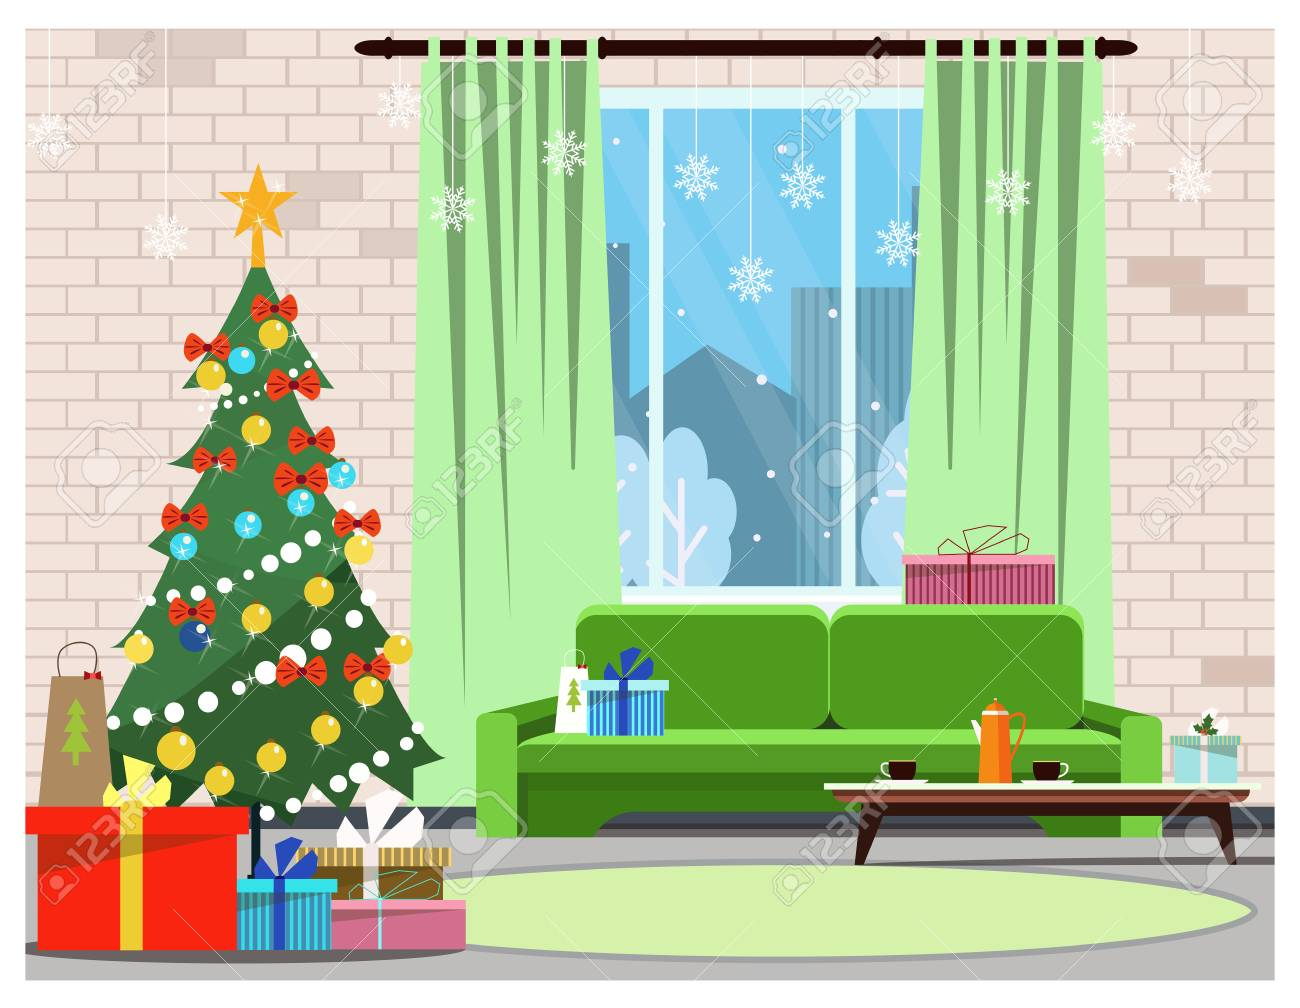 Apartment Interior With Decorated Fir-tree, Window And Sofa ...